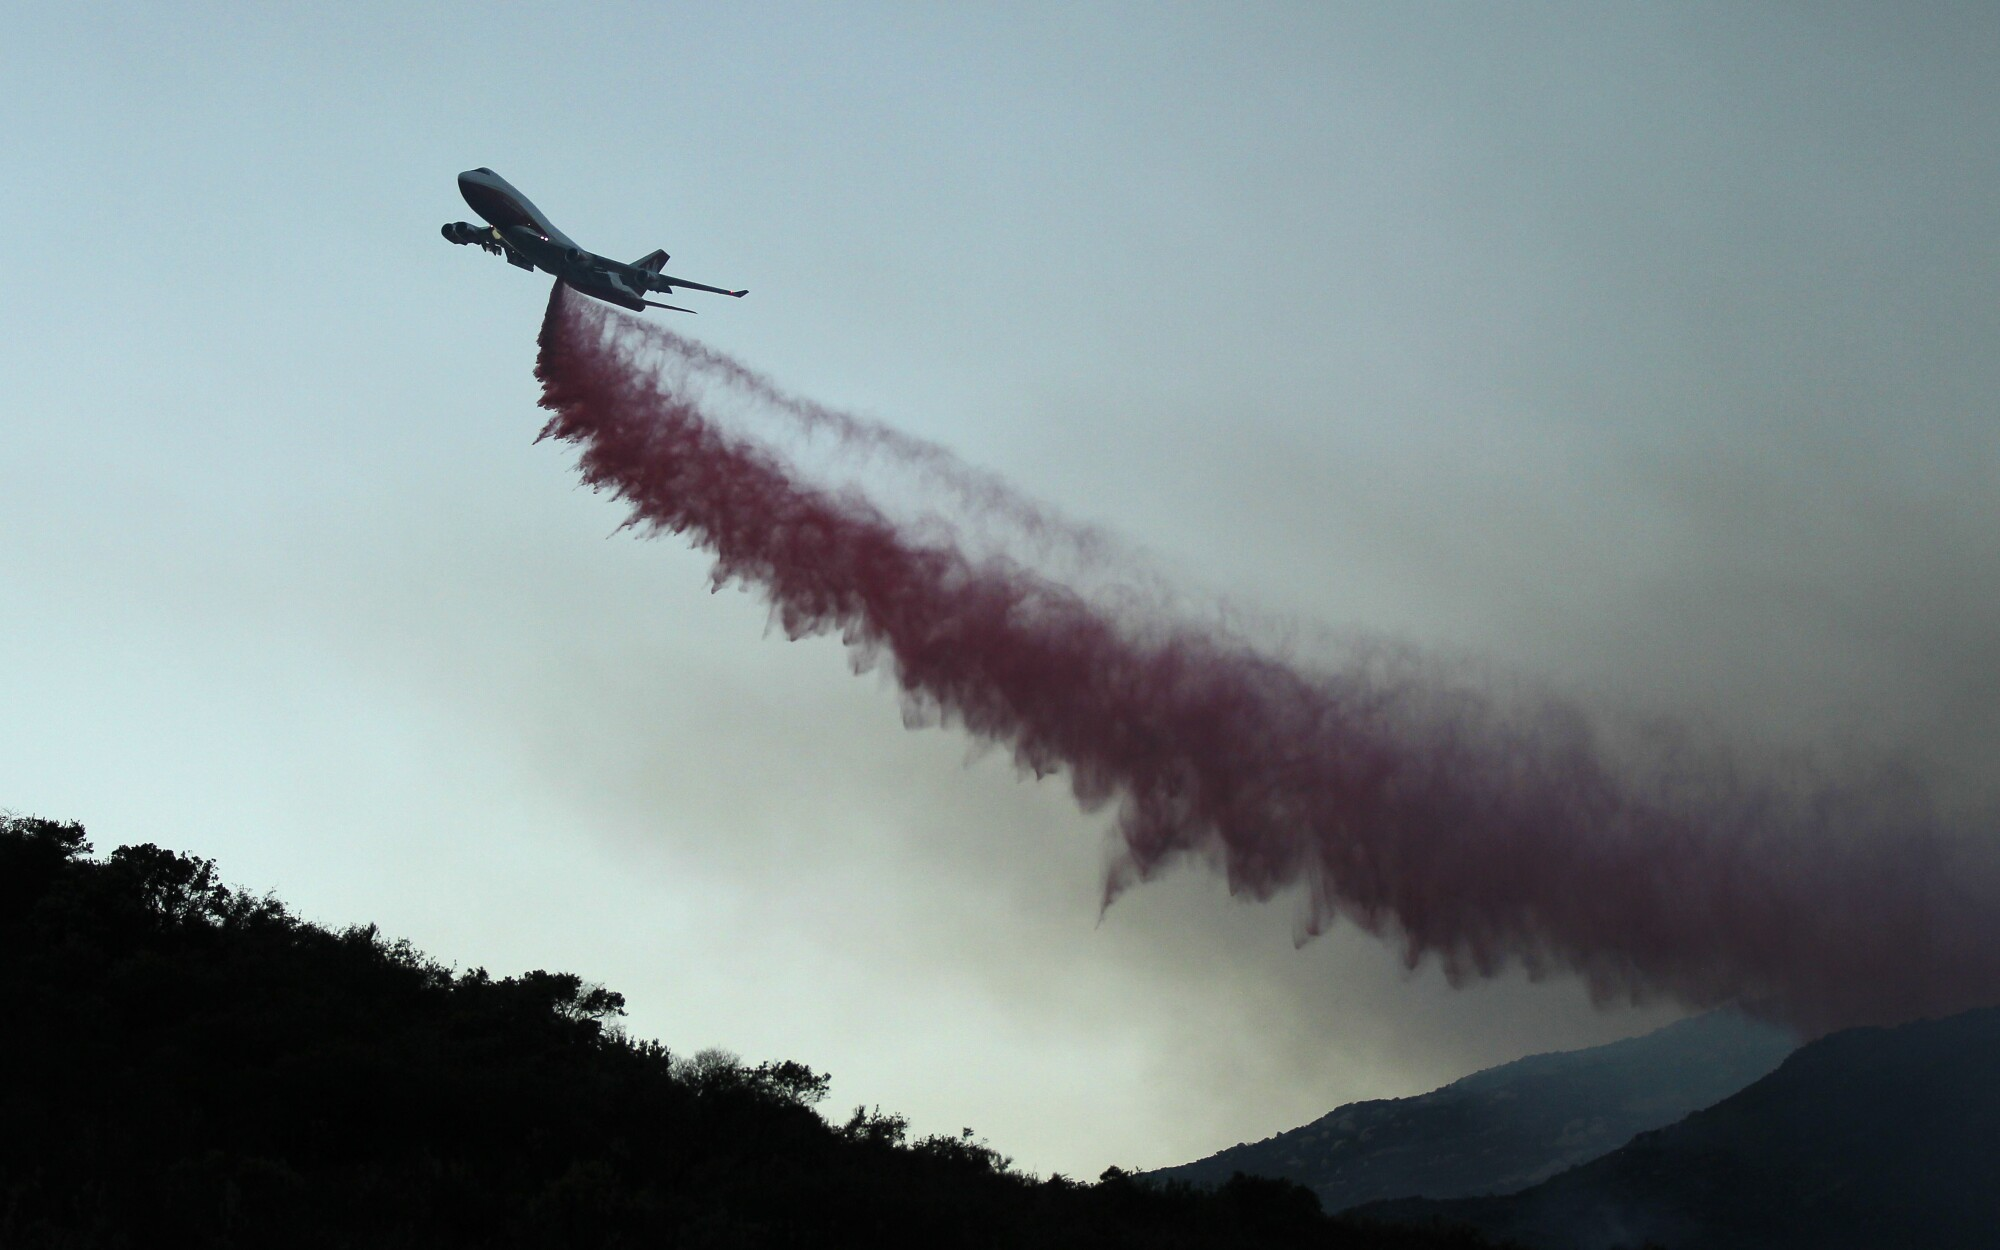 A 747 tanker drops fire retardant along Lyons Valley Road during the Valley Fire on Sunday, Sept. 6, 2020.